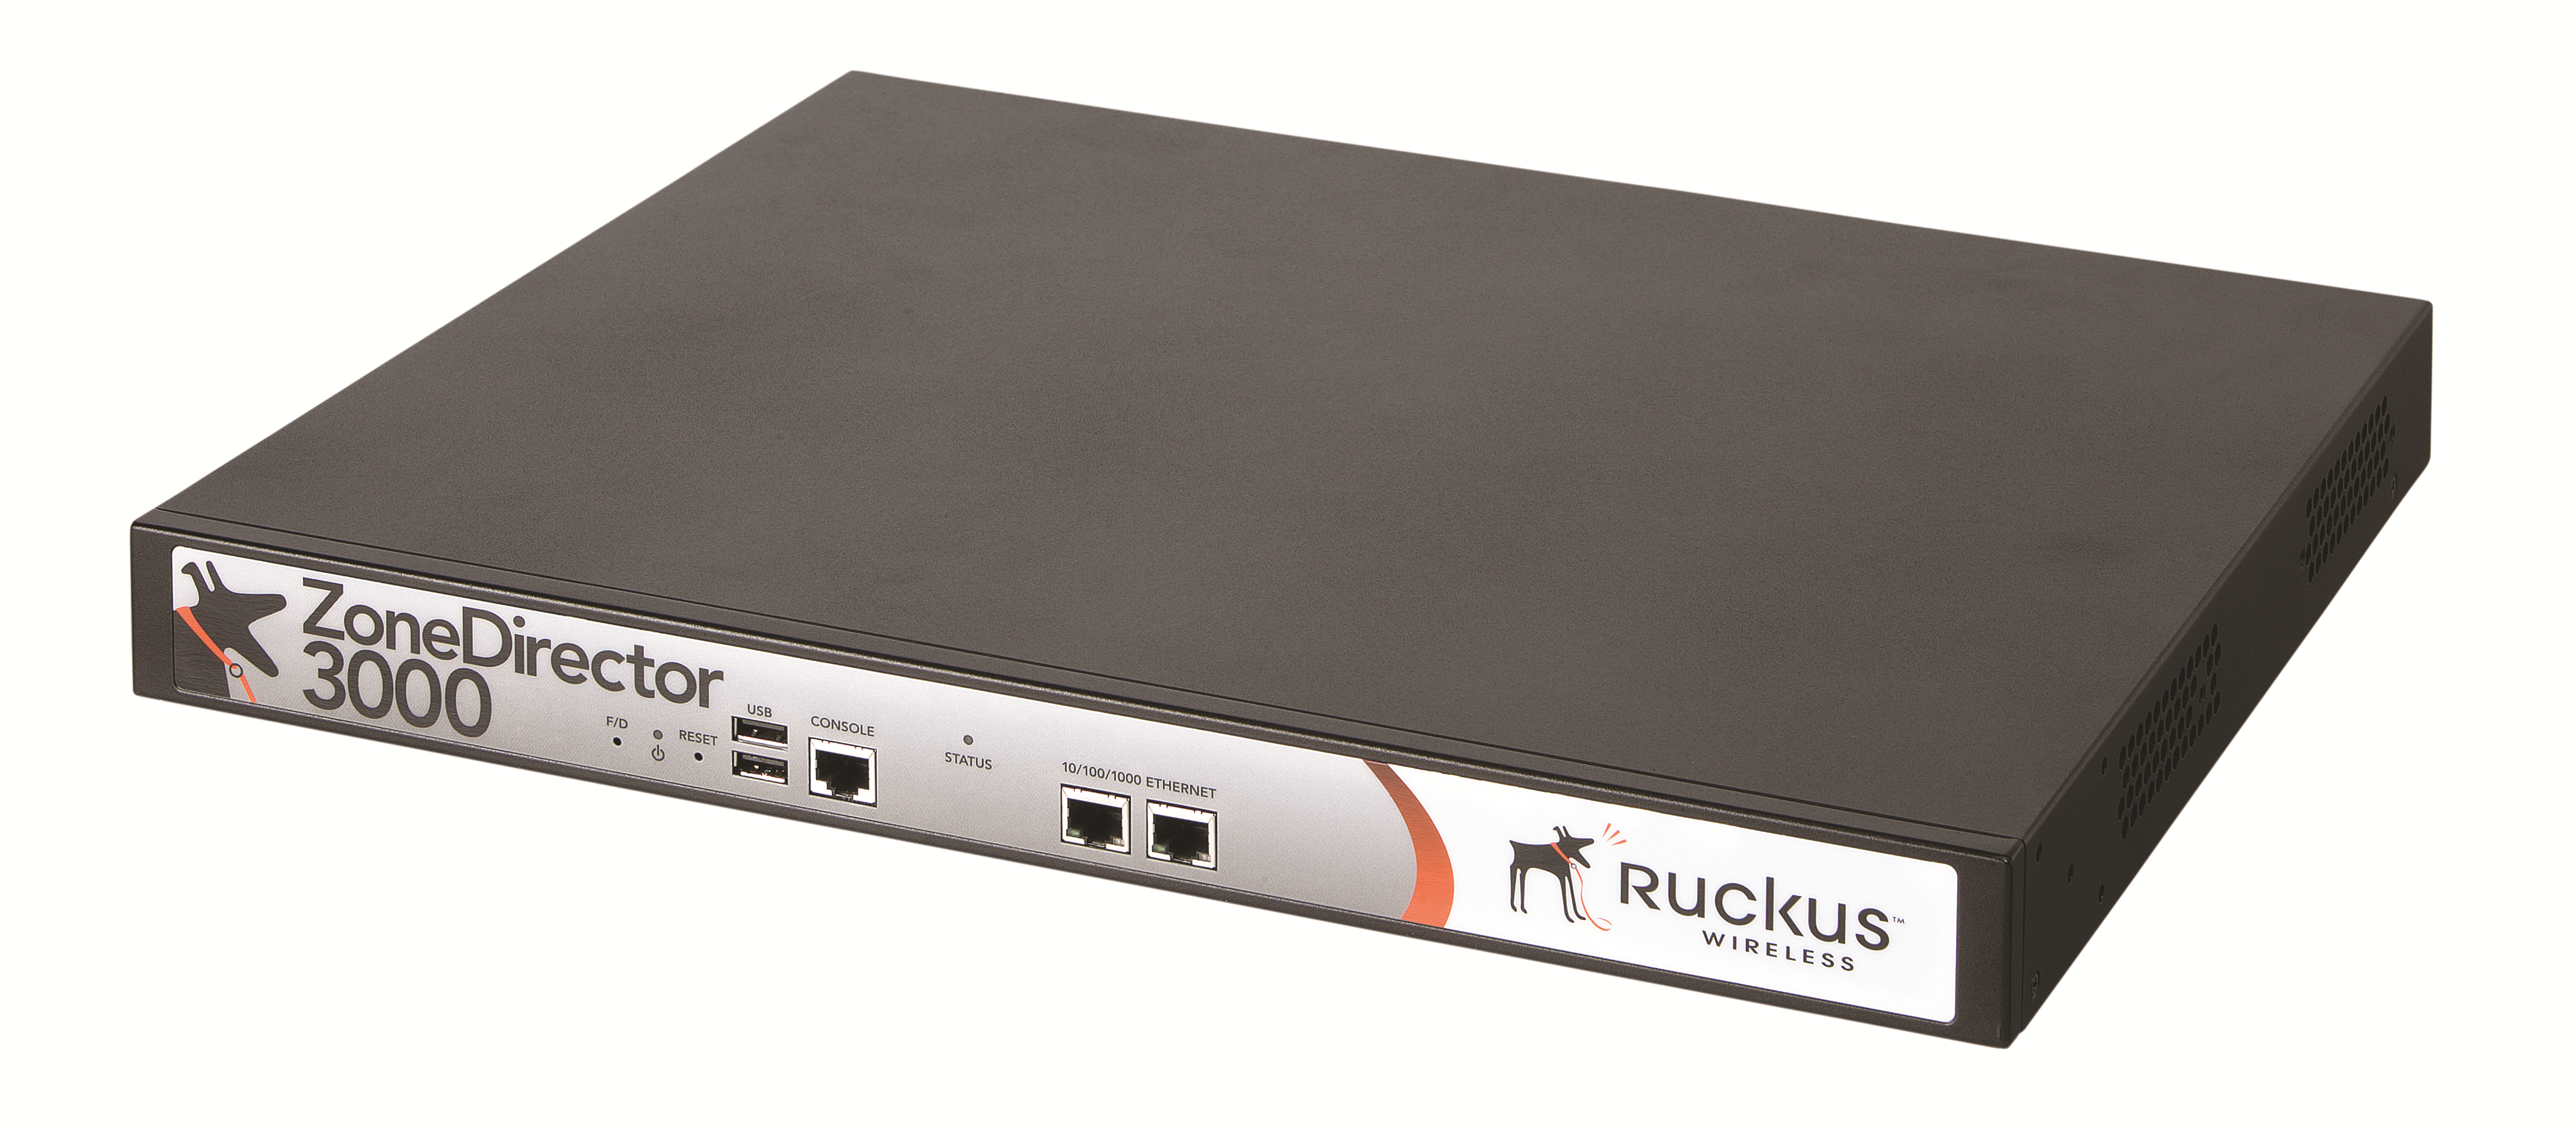 ZoneDirector 3000 | Products | Ruckus Wireless Support